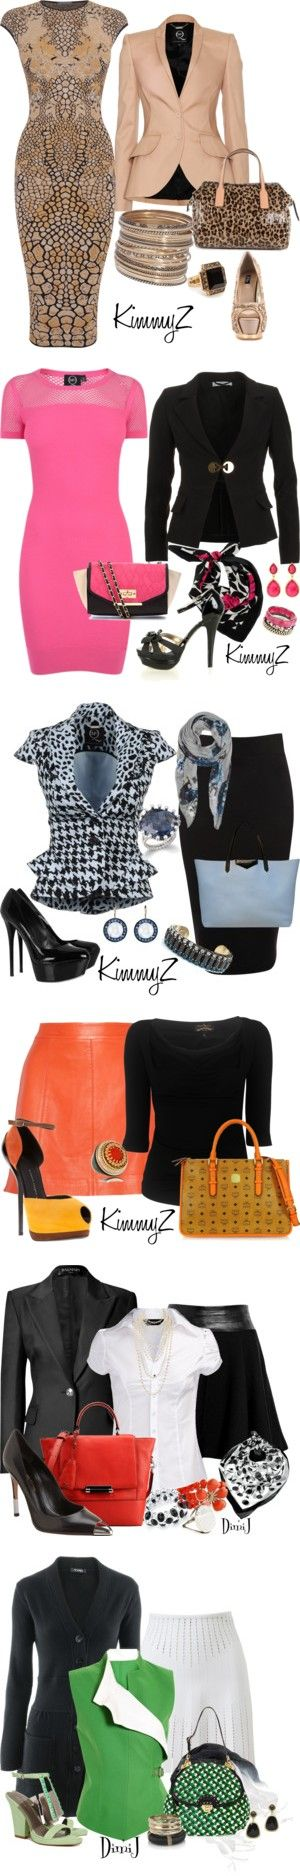 """Working 9-5"" by zuckie1 on Polyvore"